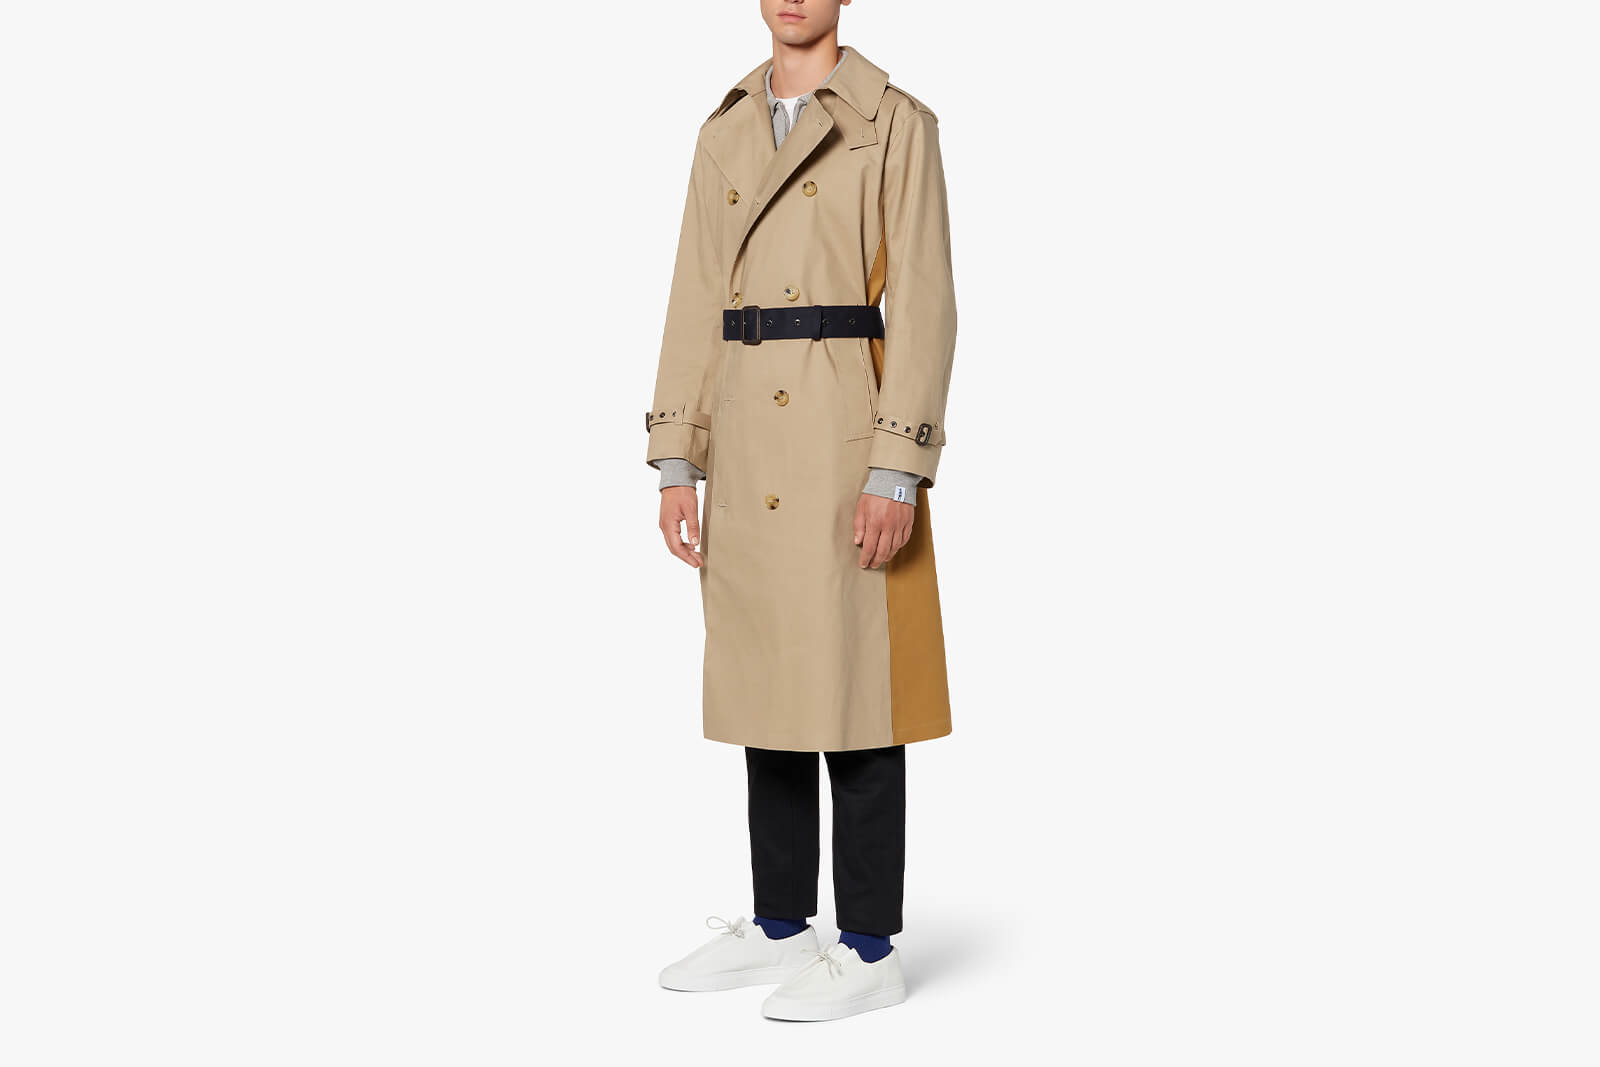 Berlin Fawn X Ink Bonded Cotton Trench Coat